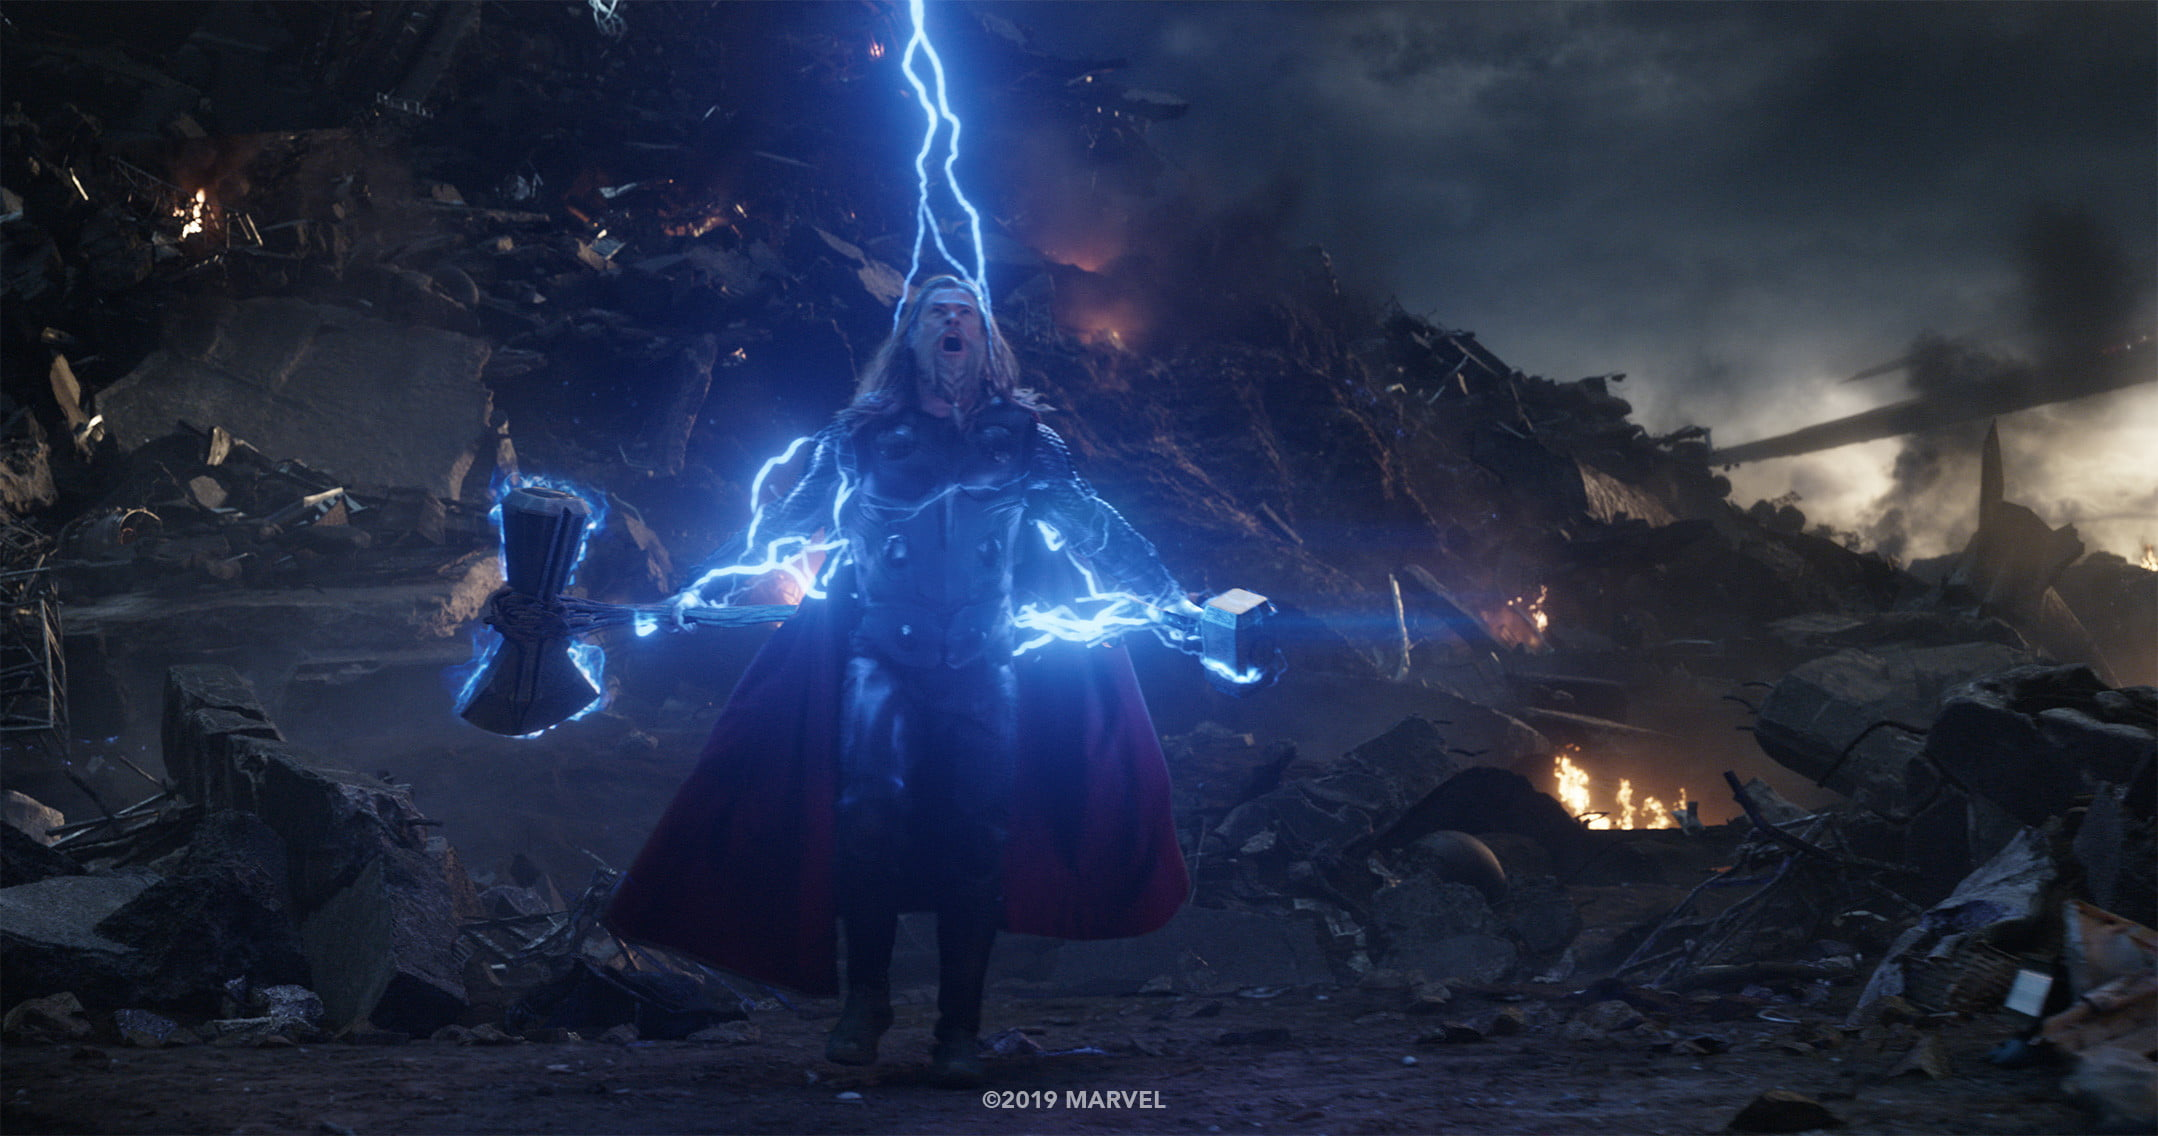 Behind The Scenes With The Vfx Heroes Of Avengers Endgame